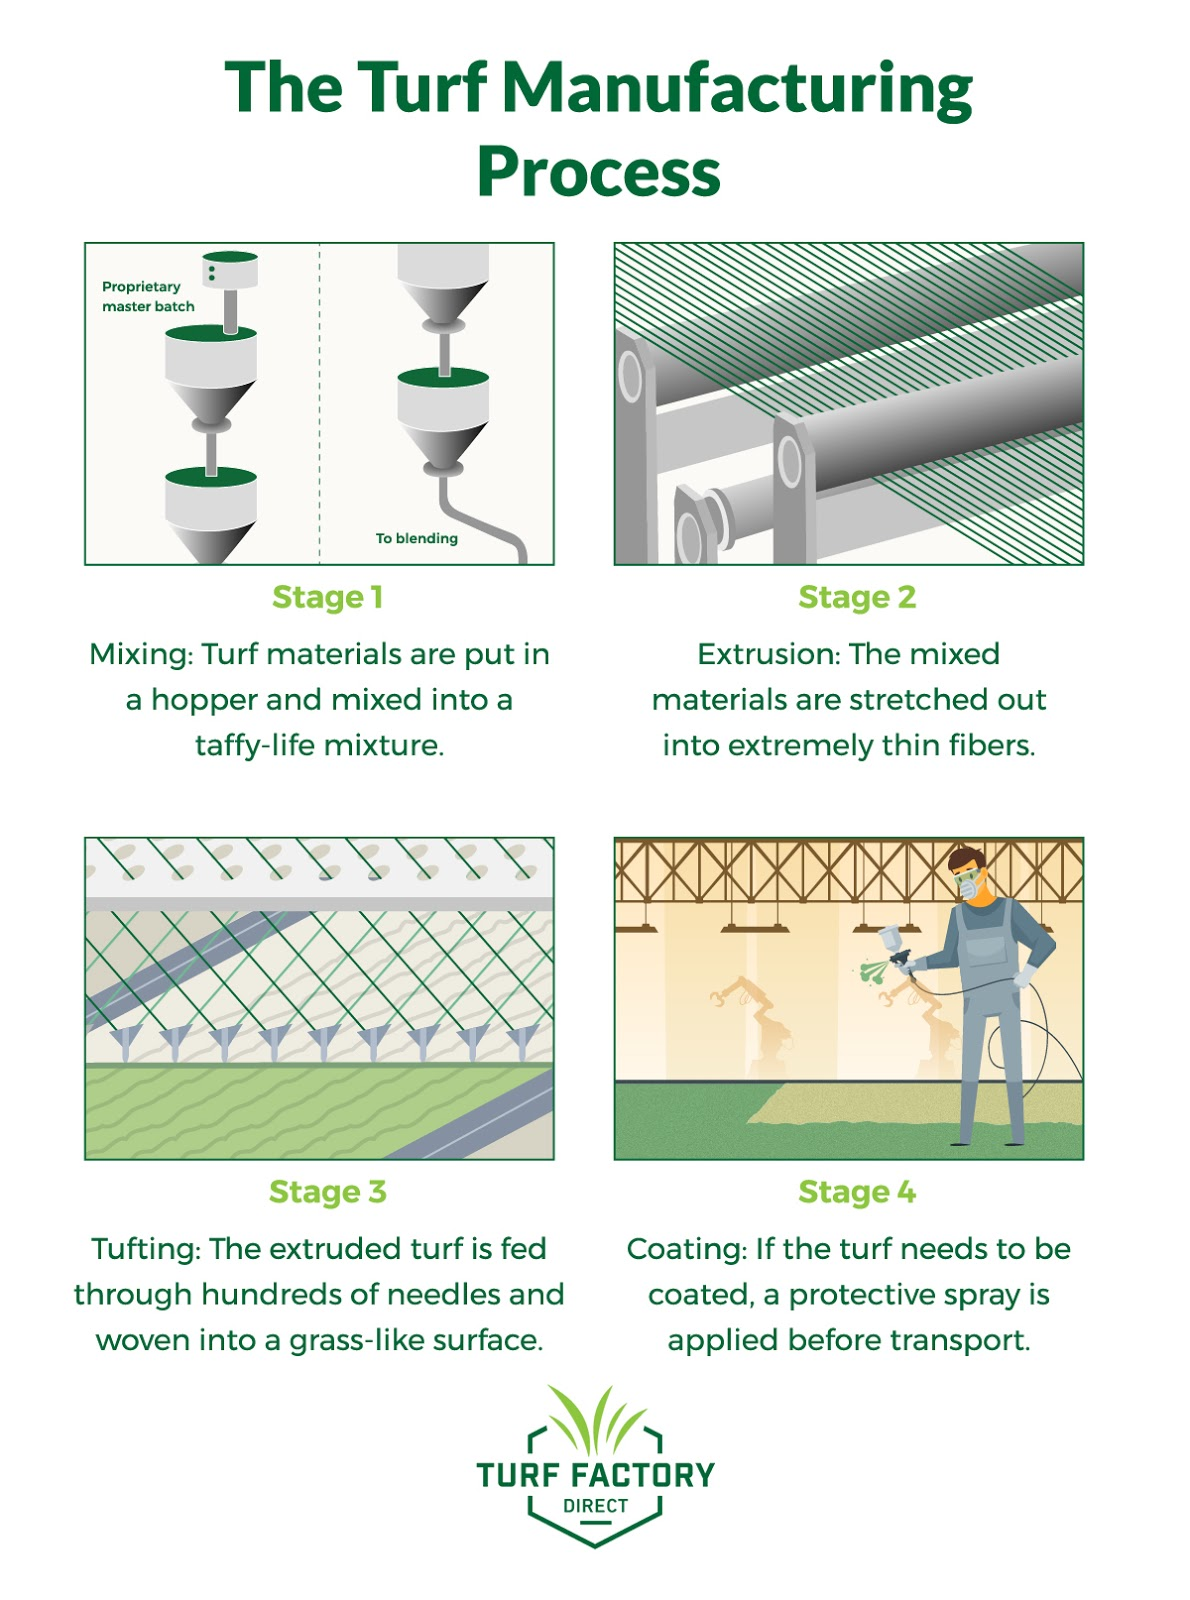 Manufacturing turf is a complex process with many steps. Learn about how turf is made to make more informed purchasing decisions!